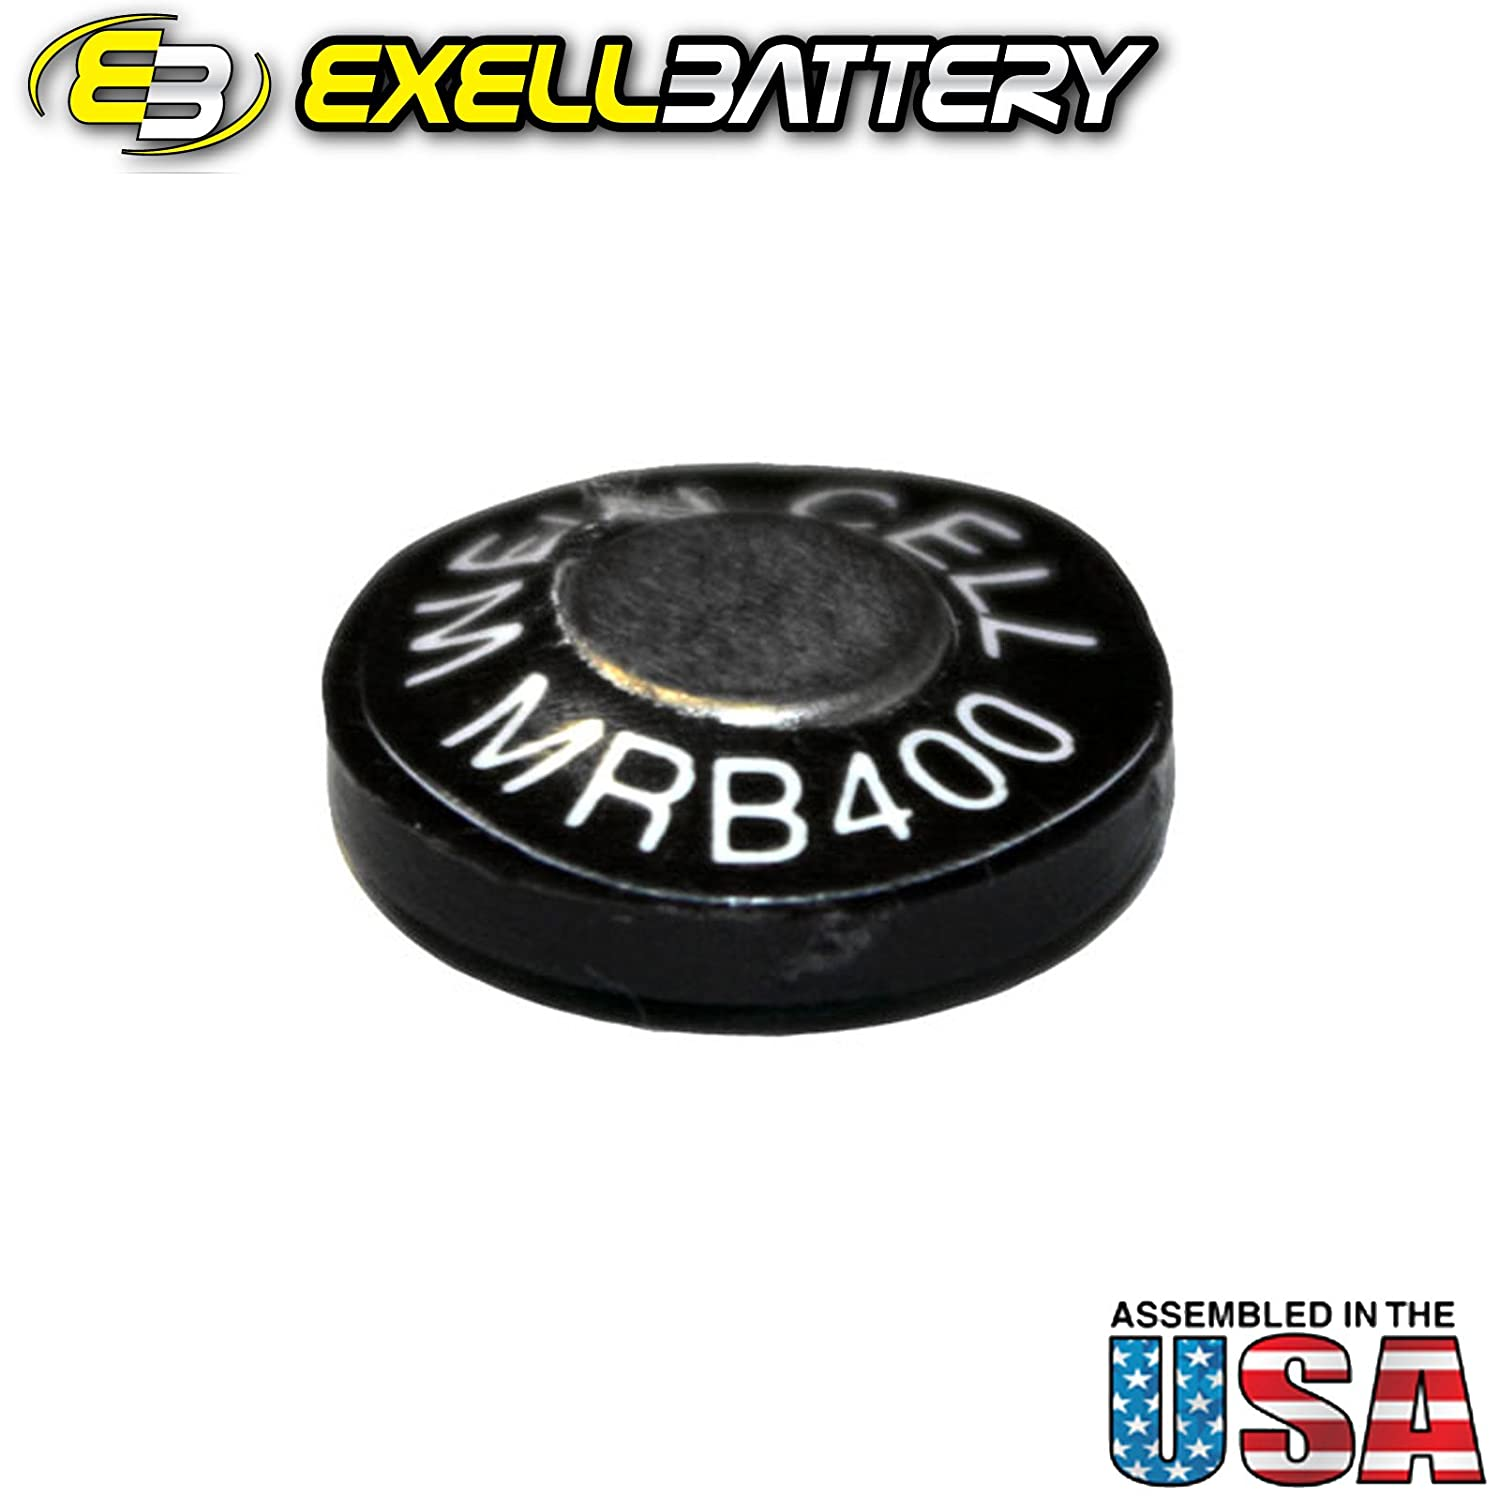 The MRB400 is a battery replacement for the NEDA 1116M battery